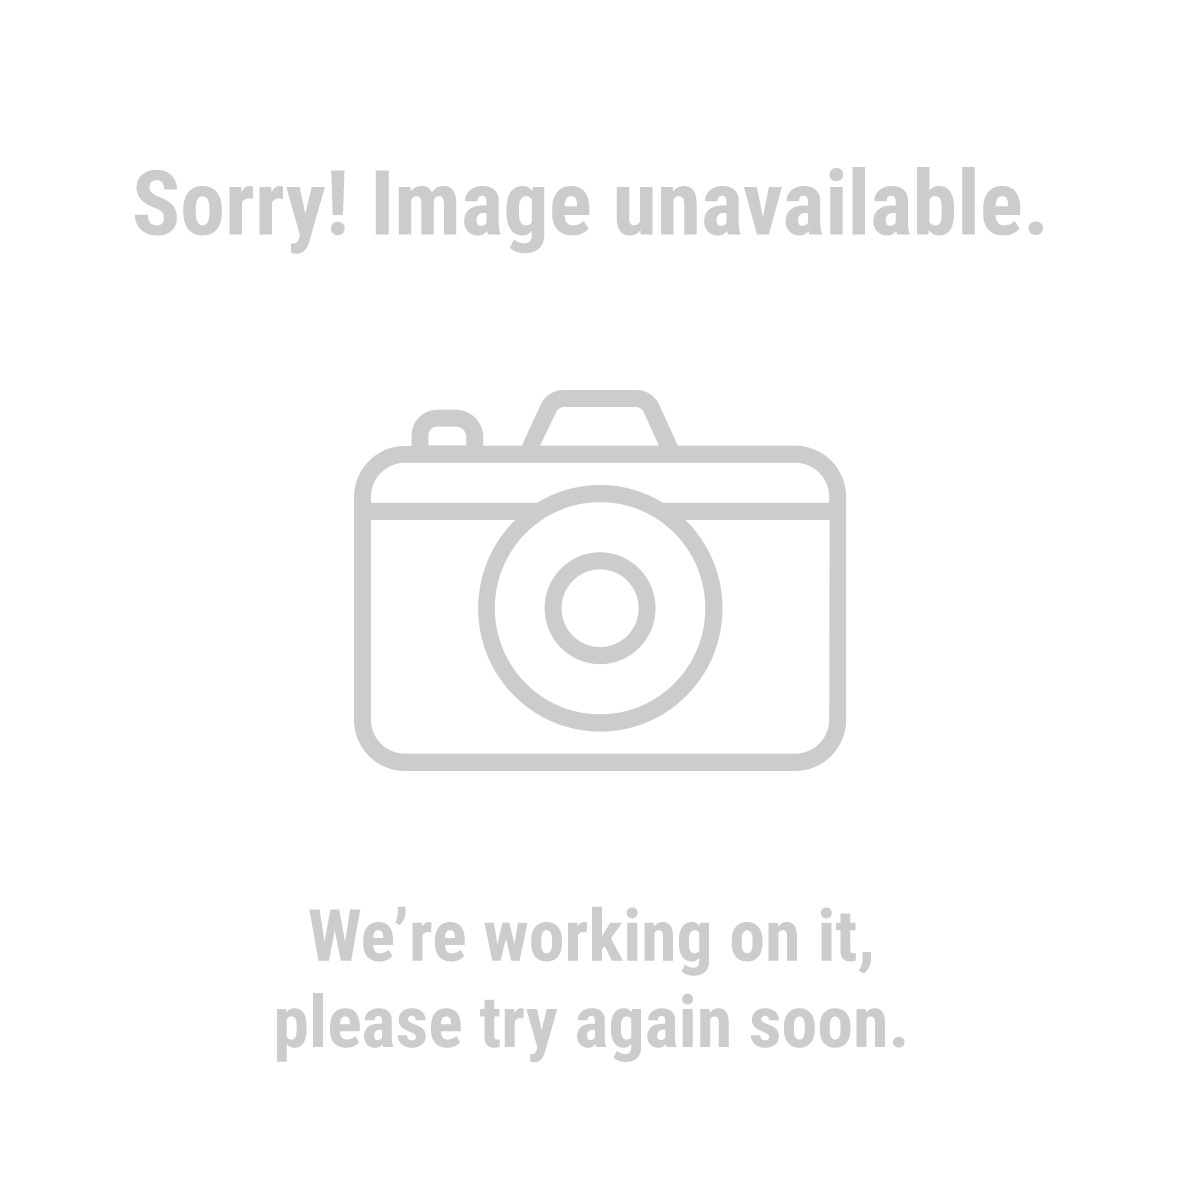 Western Safety 50027 Pack of 5 Dust and Particle Masks